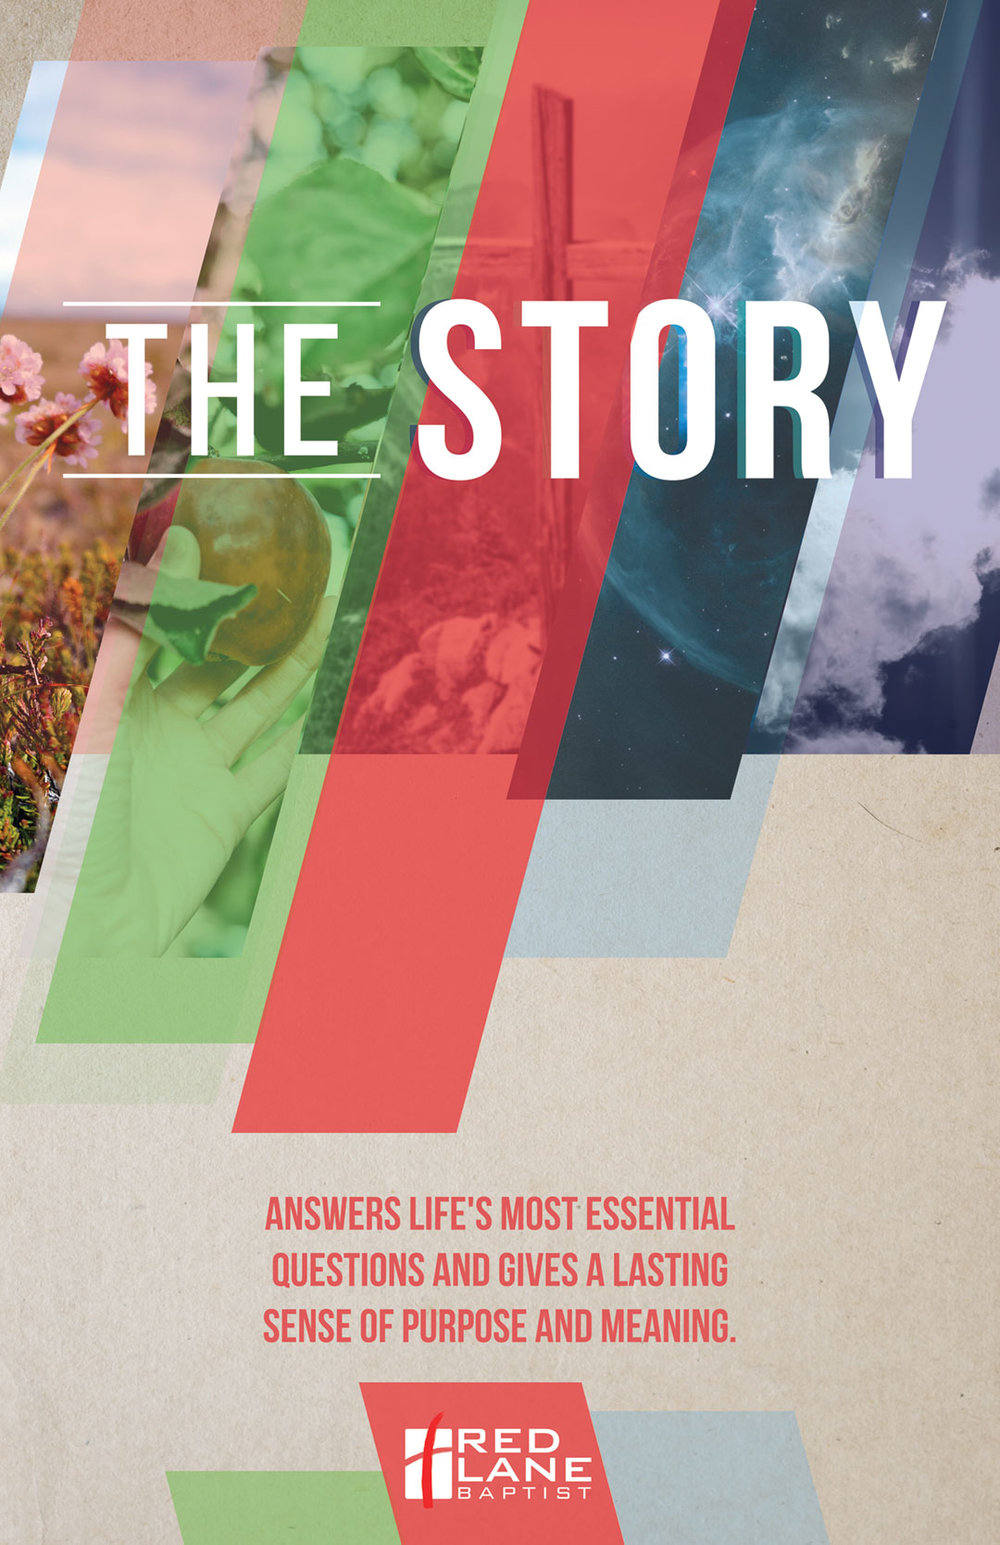 Red Lane Baptist Church's The Story Series